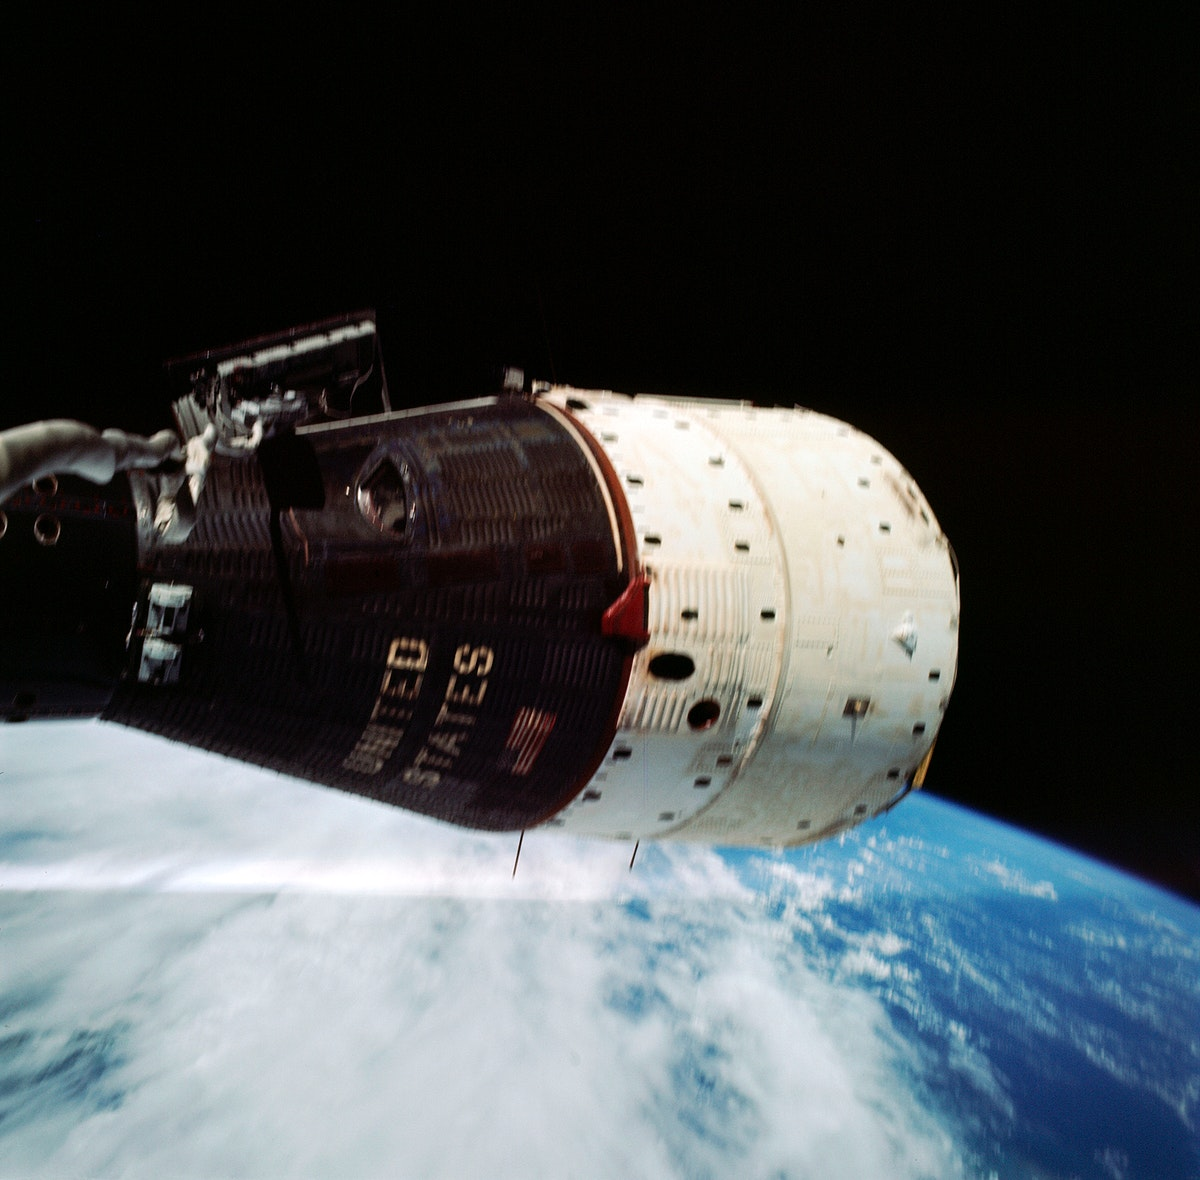 Astronaut Eugene A. Cernan took this close-up view of the Gemini-9A spacecraft during his extravehicular activity on the…